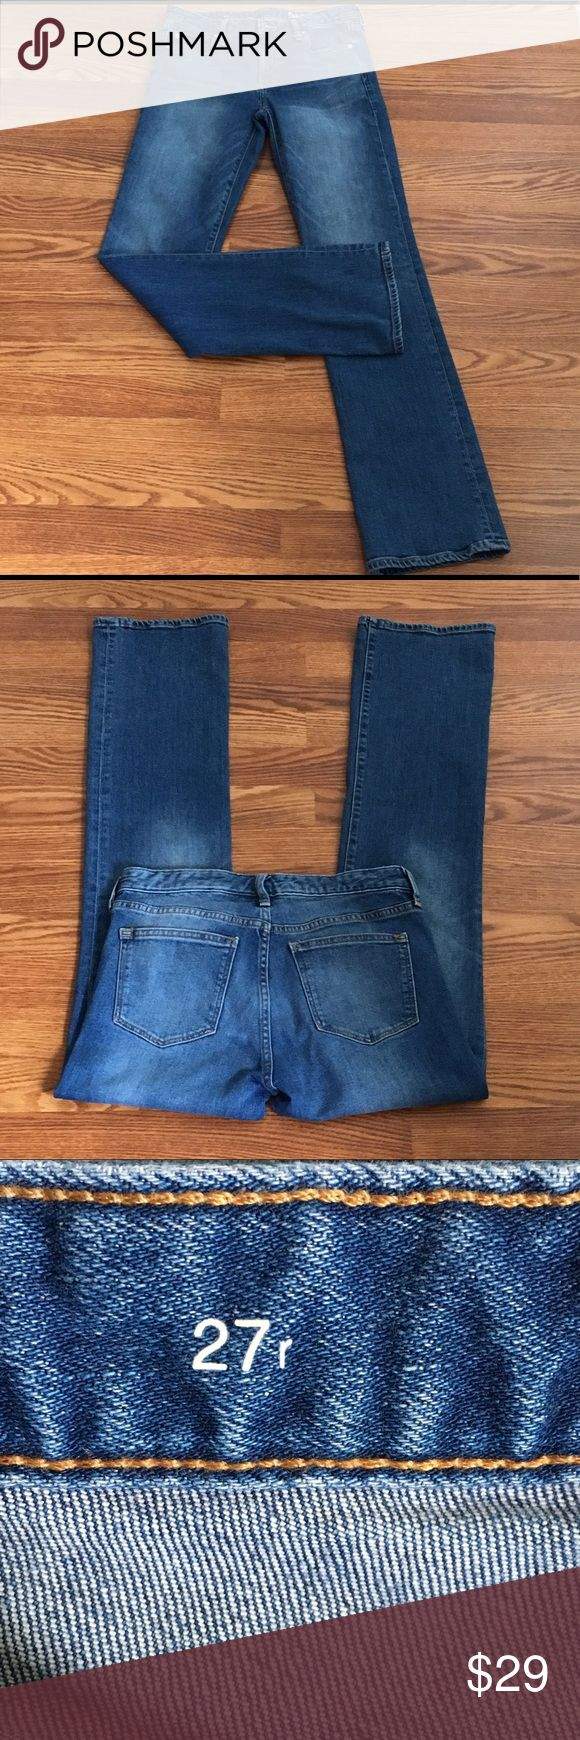 Gap Jeans Medium rinse boot cut jeans from Gap in fantastic shape! Like new! GAP Jeans Boot Cut